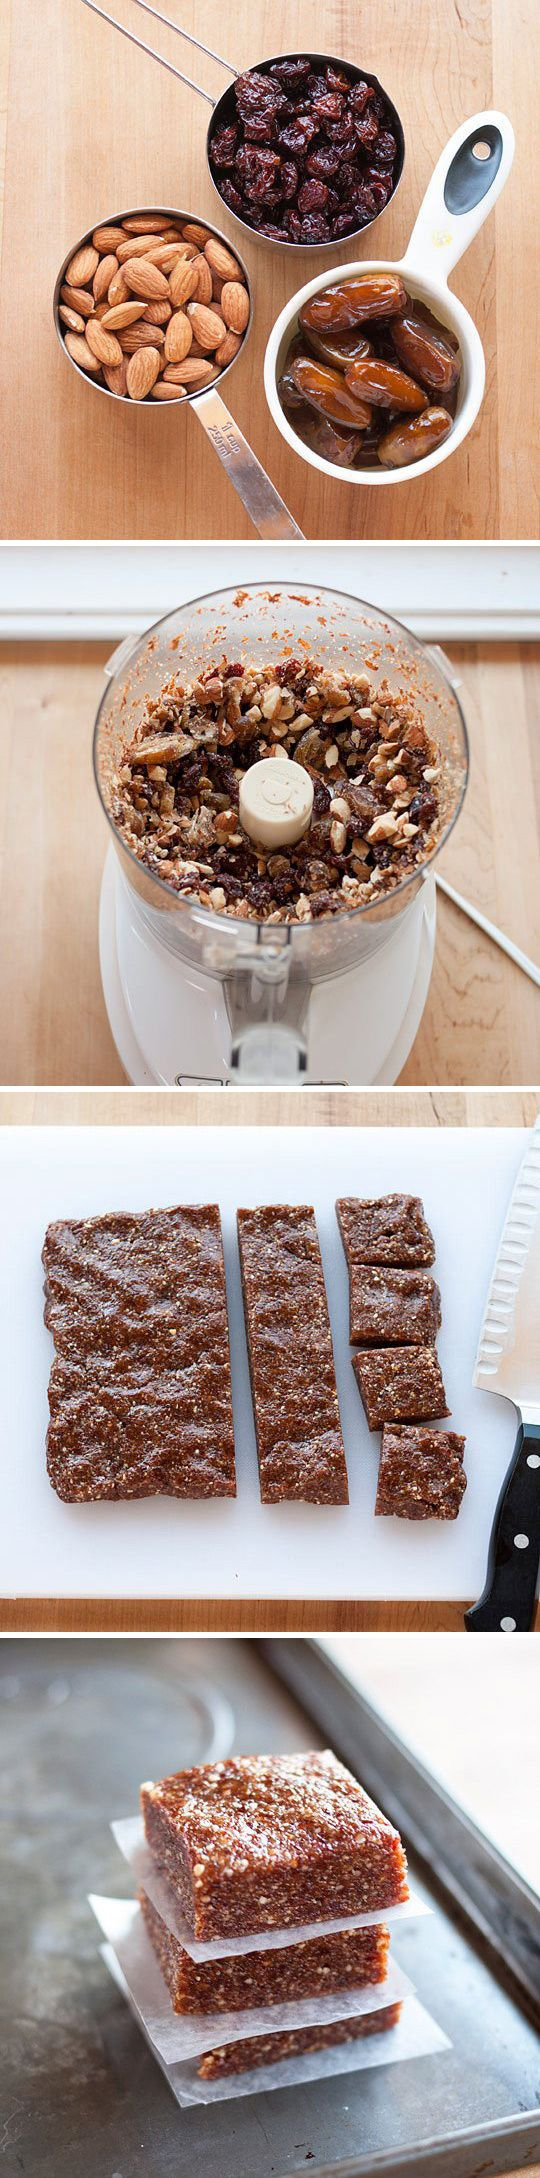 3 Ingredients Energy Bars